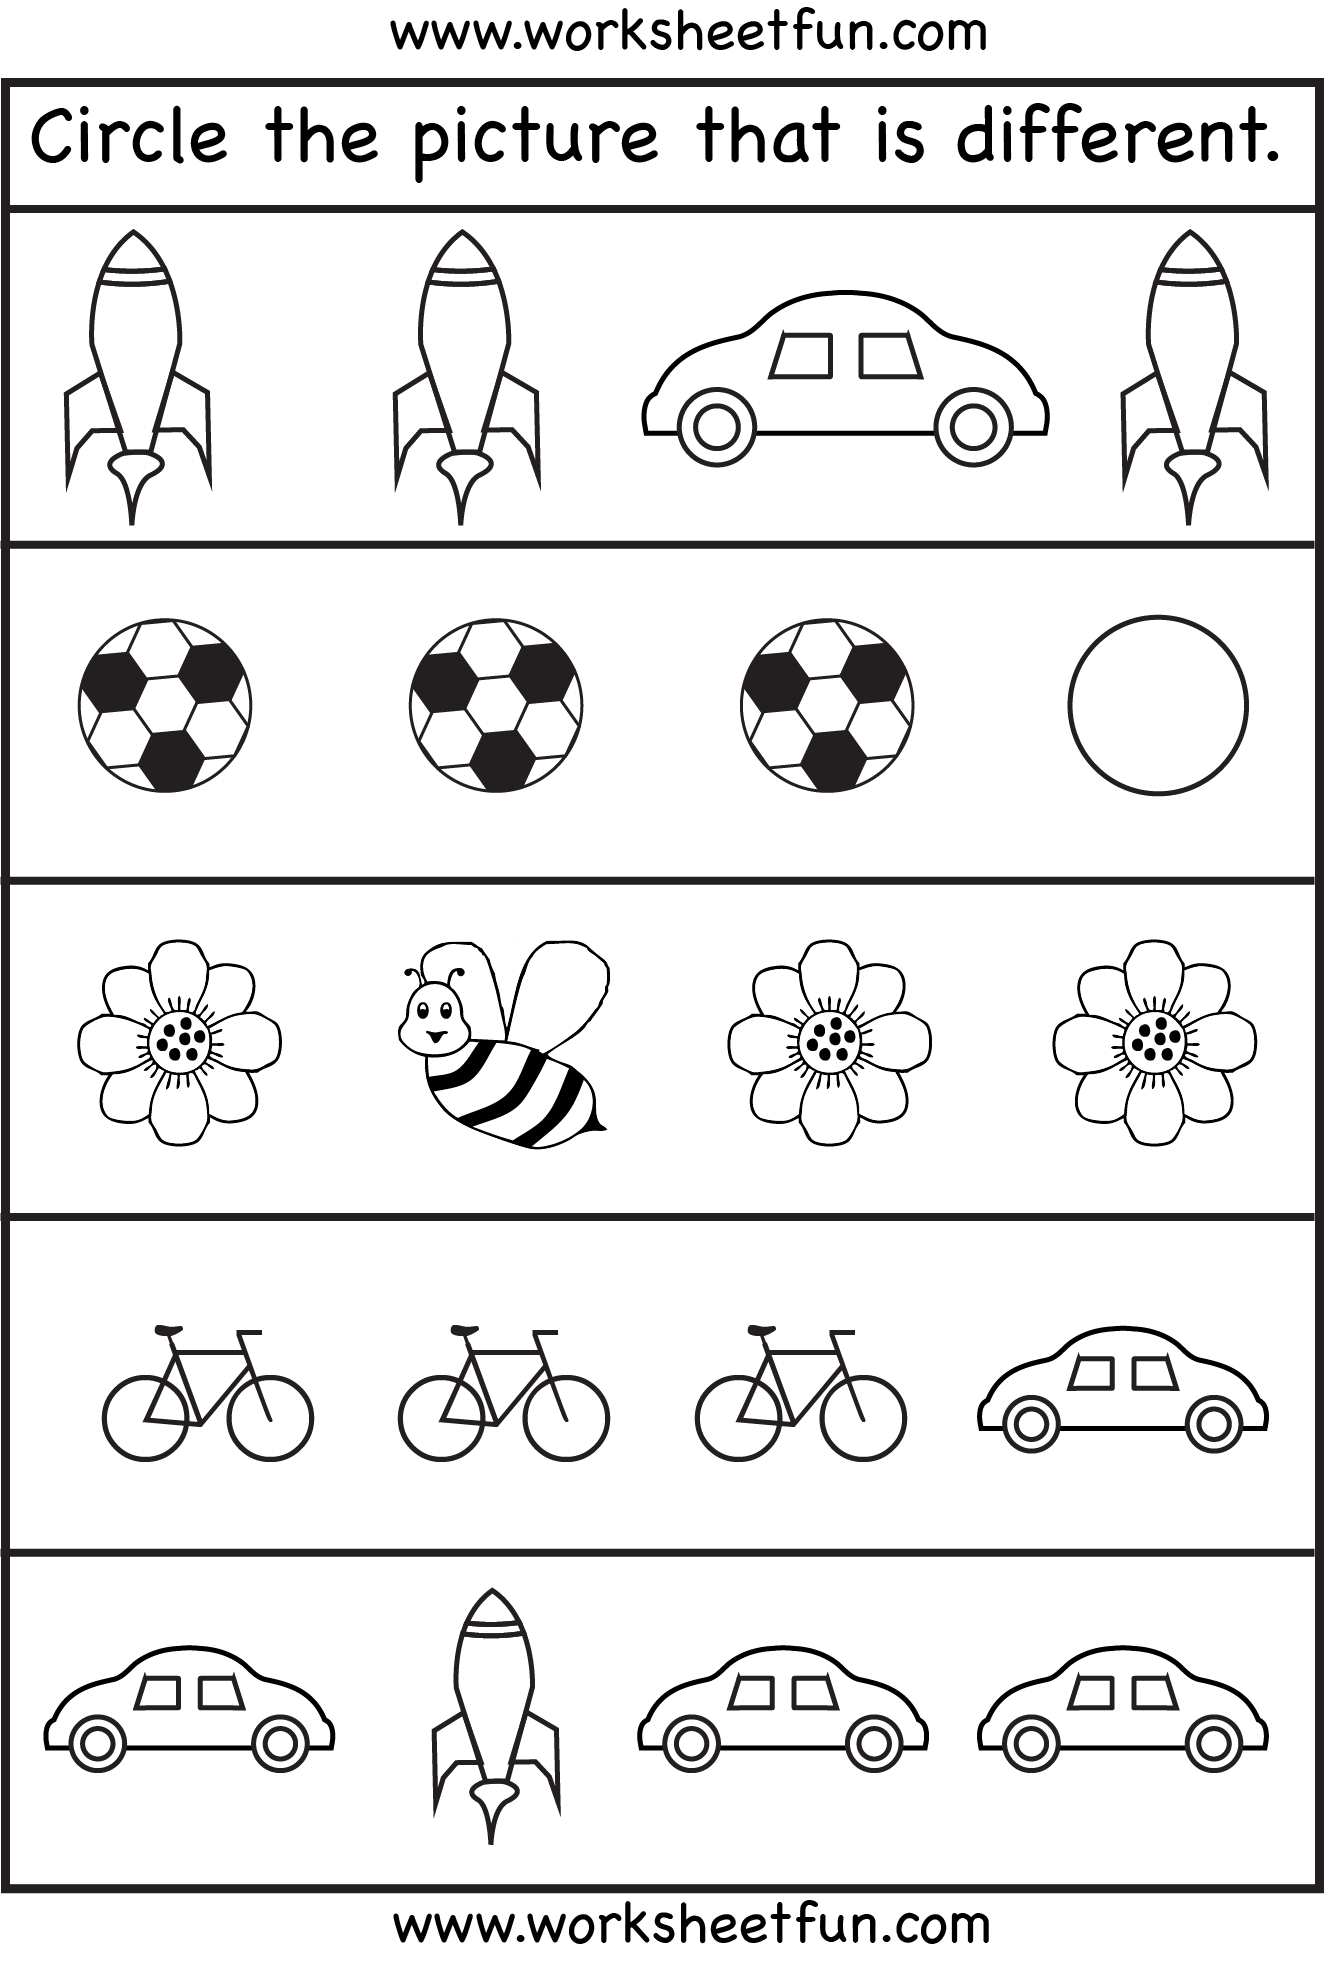 Worksheets Academic Worksheets For Kids circle the picture that is different 4 worksheets preschool work and other concepts shapes math etc free printable kindergarten workshe